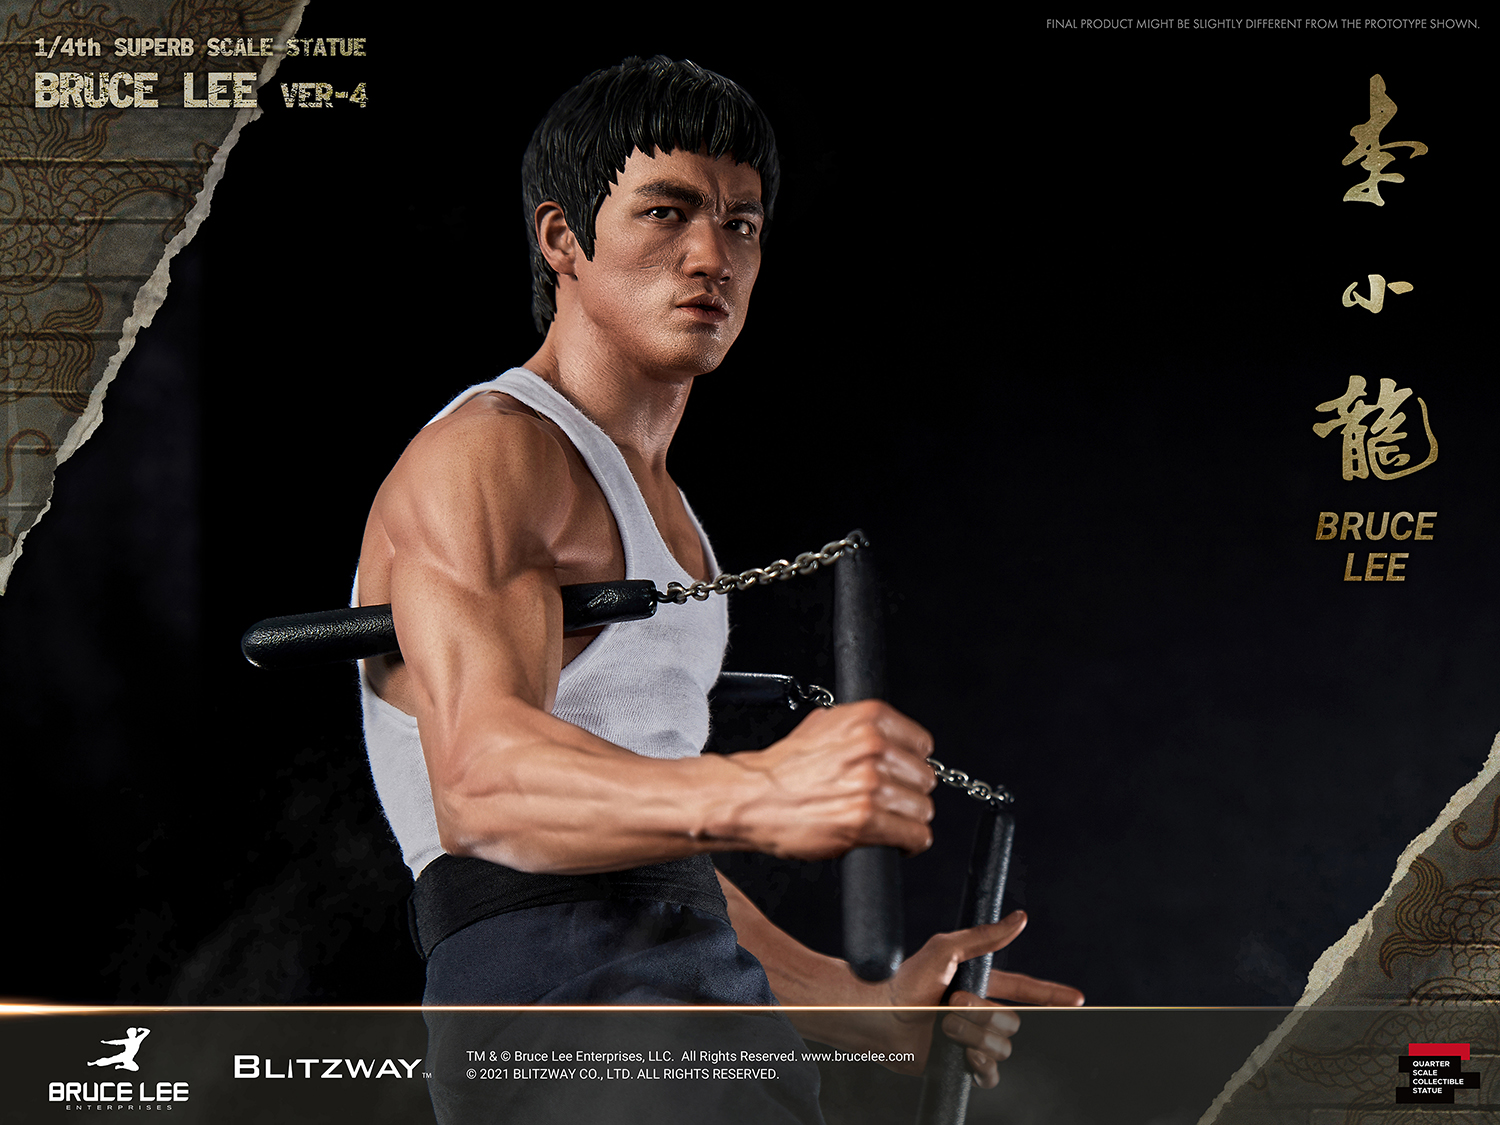 Link a Bruce Lee_Tribute Statue_Blitzway_ver 4- (5)